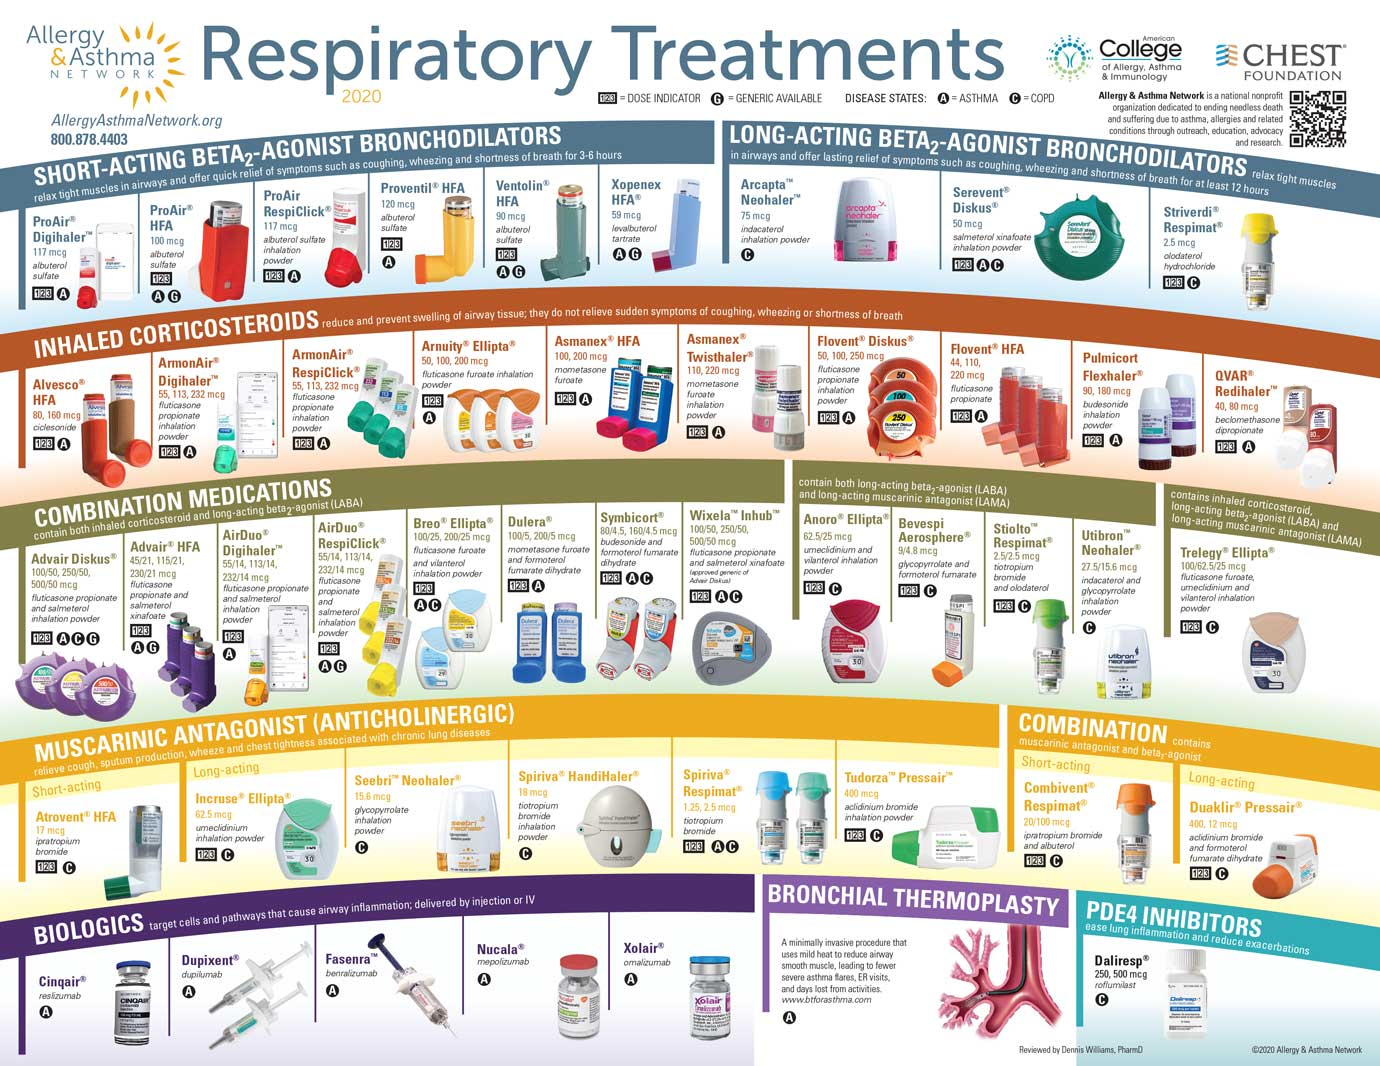 Image of a poster that shows all the respiratory treatments as of Nov 2020. It includes: short acting bronchodilators, inhaled corticosteroids, combined medications such as Advair, muscarinic antagonists, and biologics.